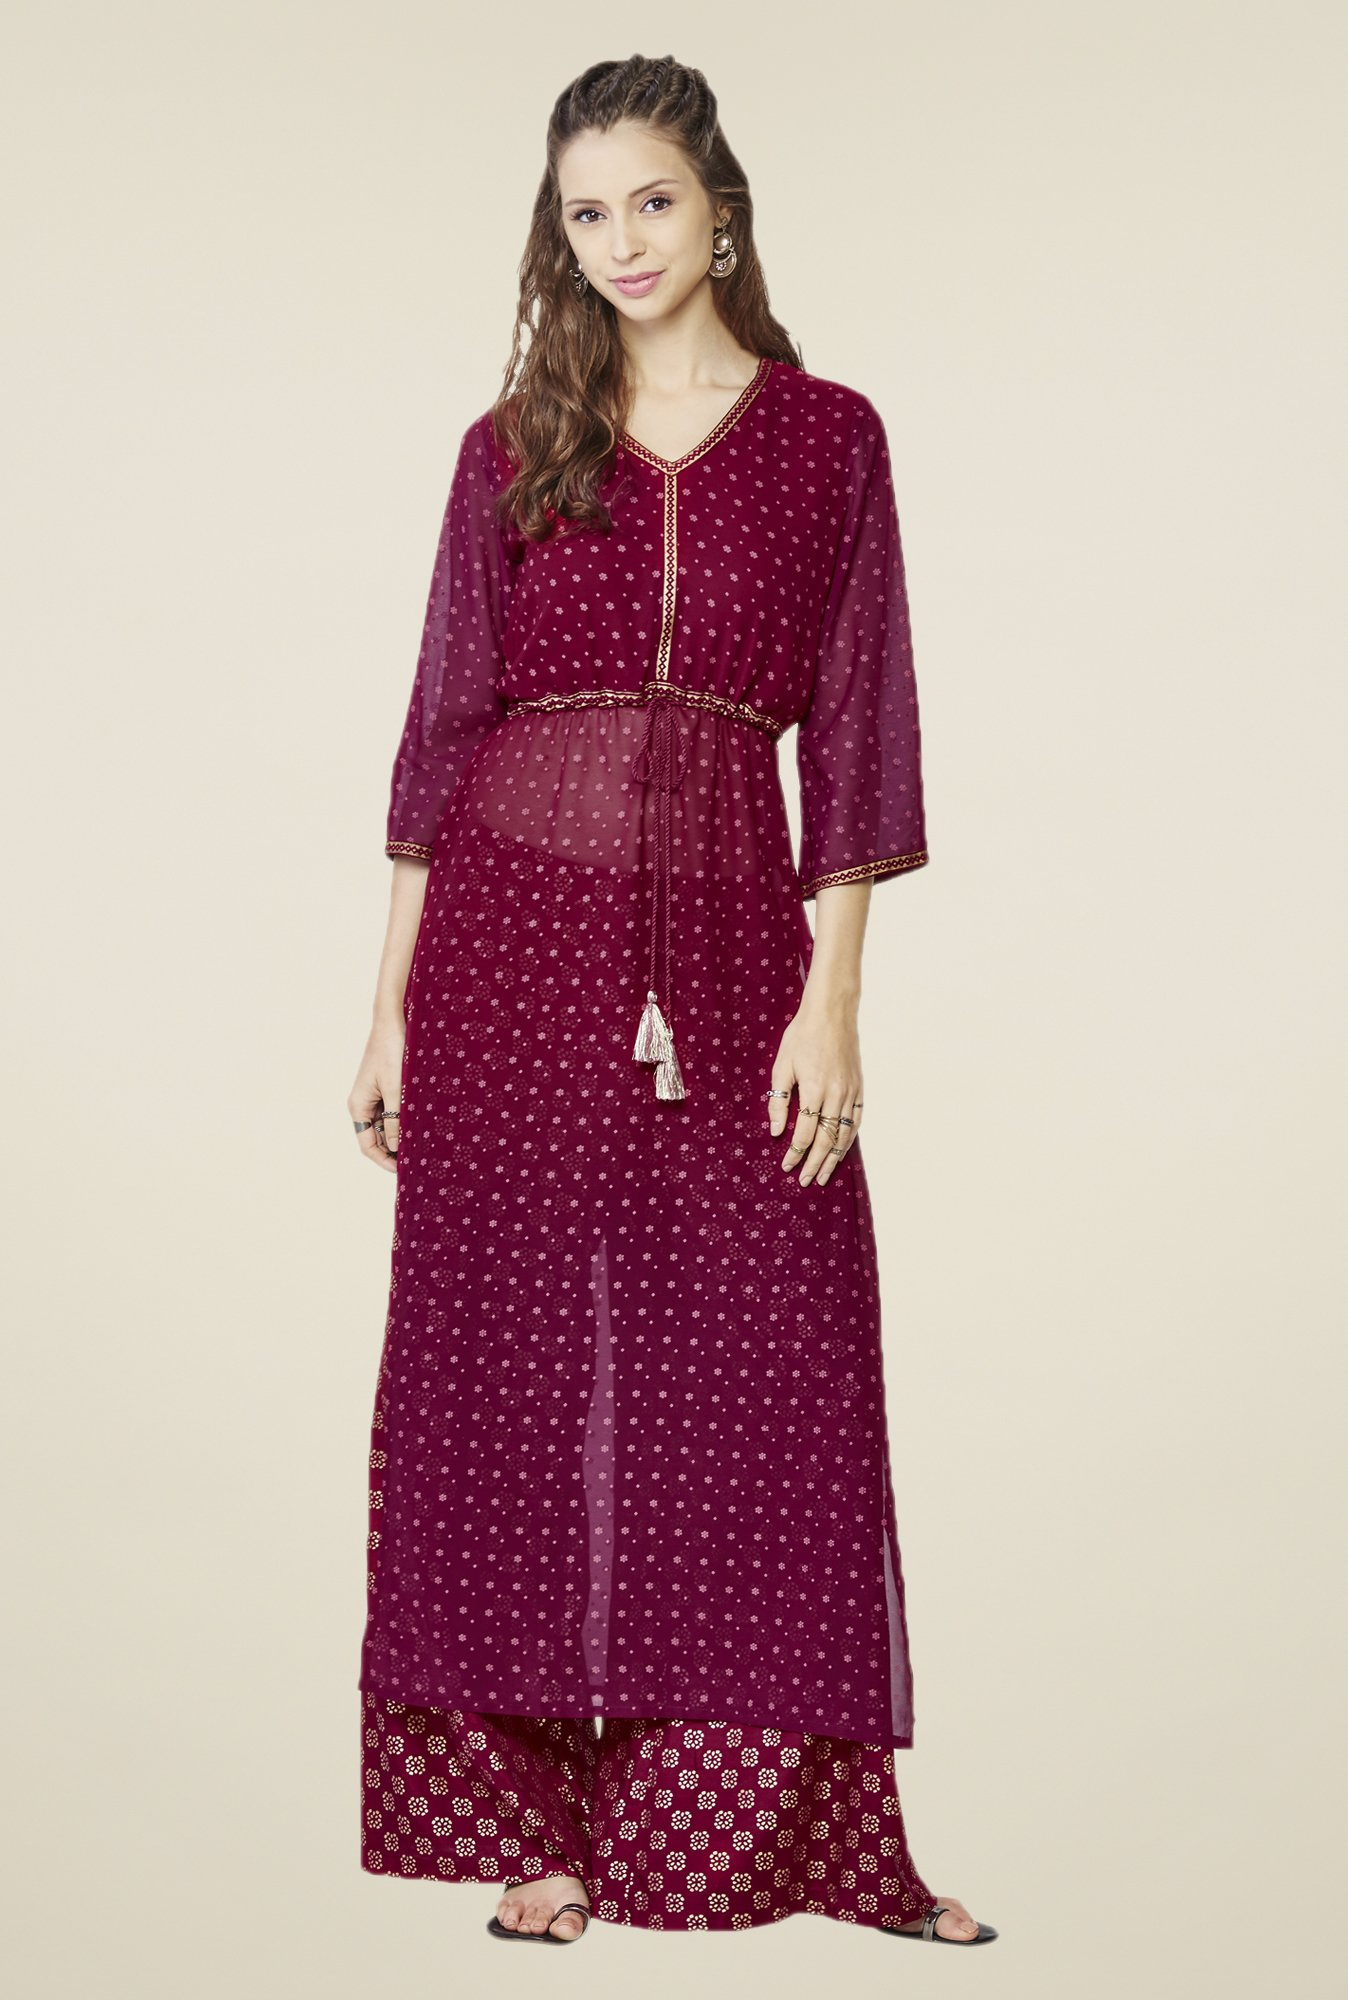 Global Desi Maroon Printed Two Piece Suit Set